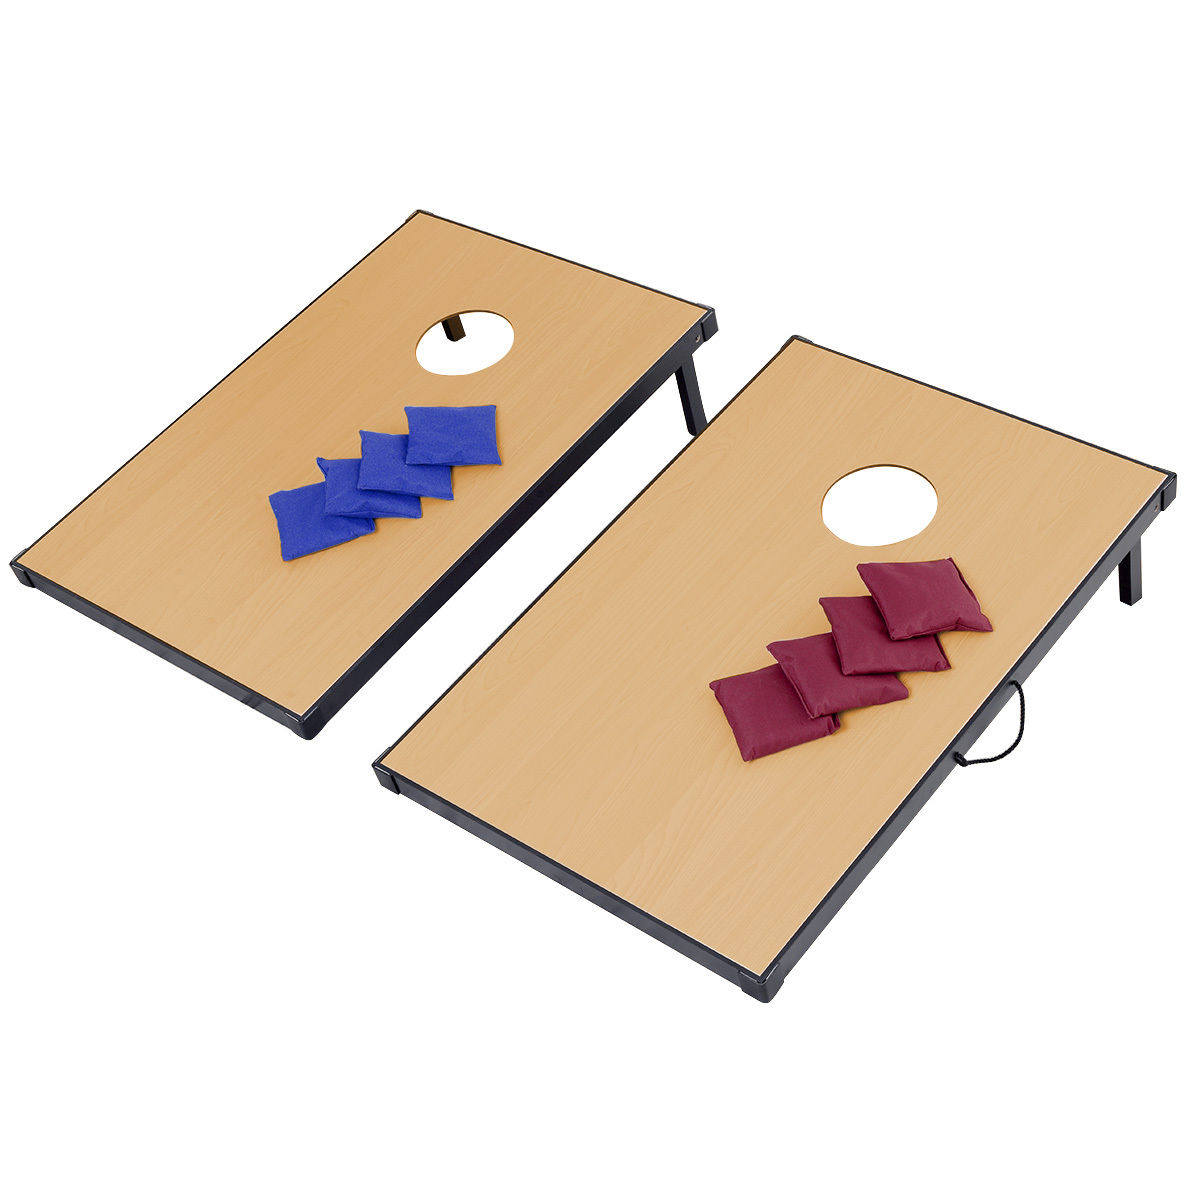 Gymax Foldable Wooden Bean Bag Toss Cornhole Game Set Boards Tailgate